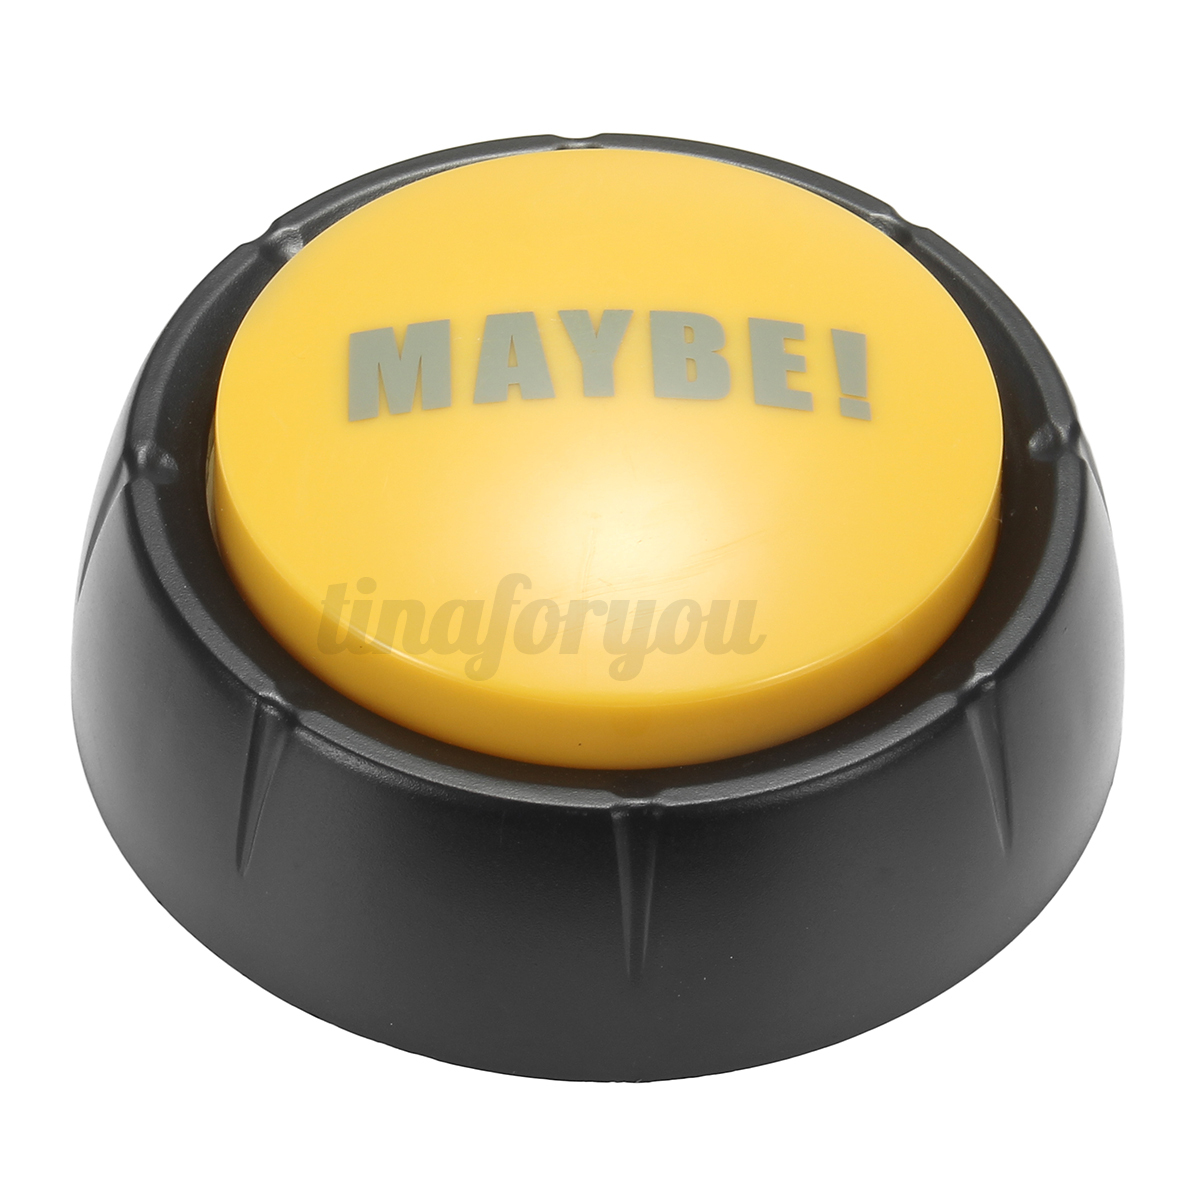 85db-YES-NO-SORRY-MAYBE-Taking-Sound-Button-Event-amp-Party-Tool-Fun-Gift-Plastic